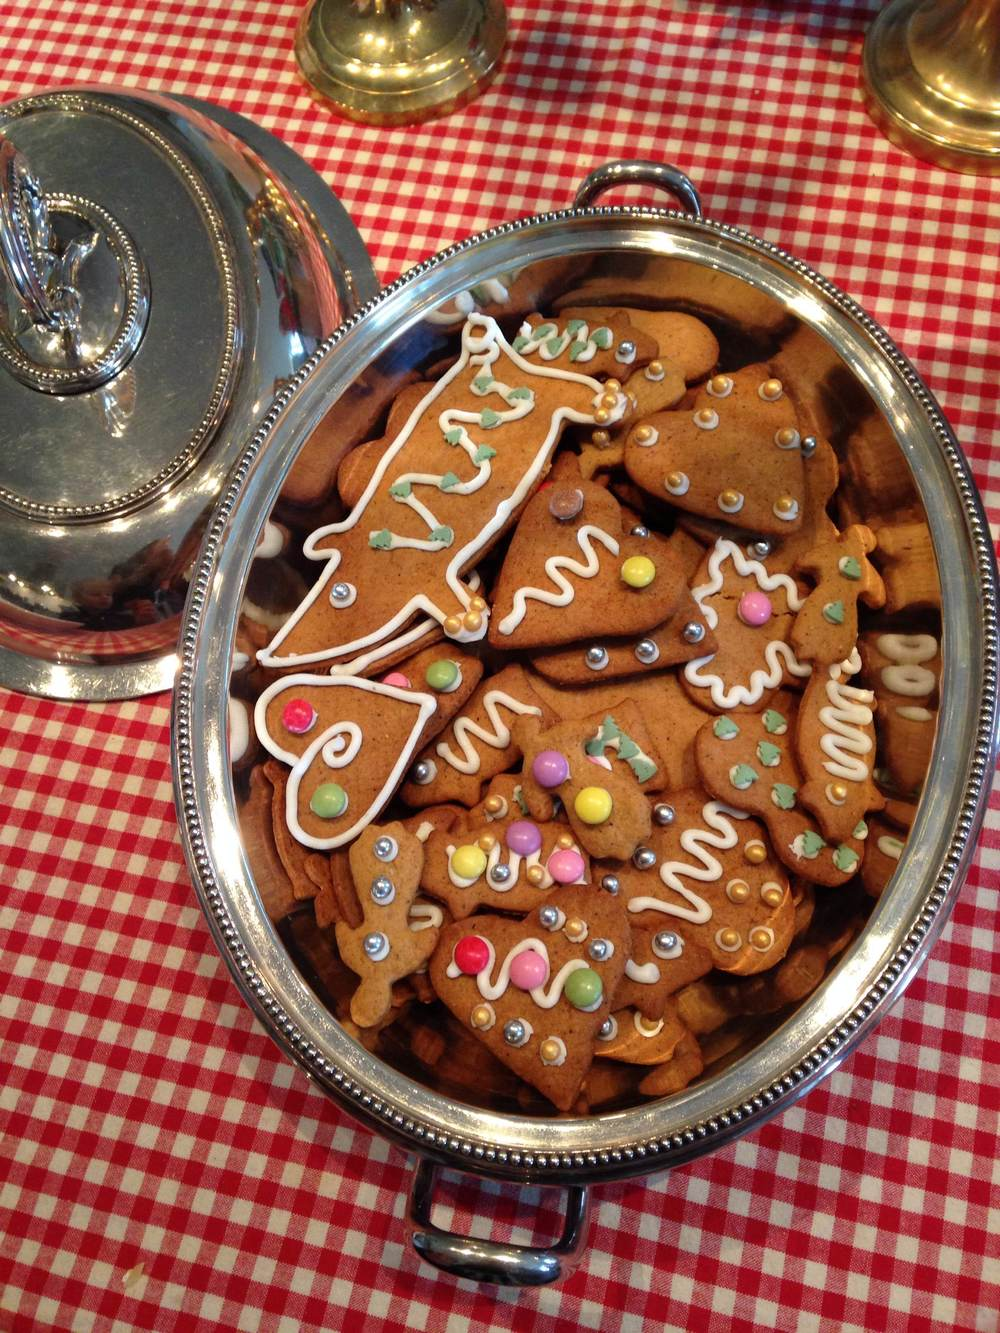 Traditional Swedish gingerbread - pimped up with some silver and gold of course